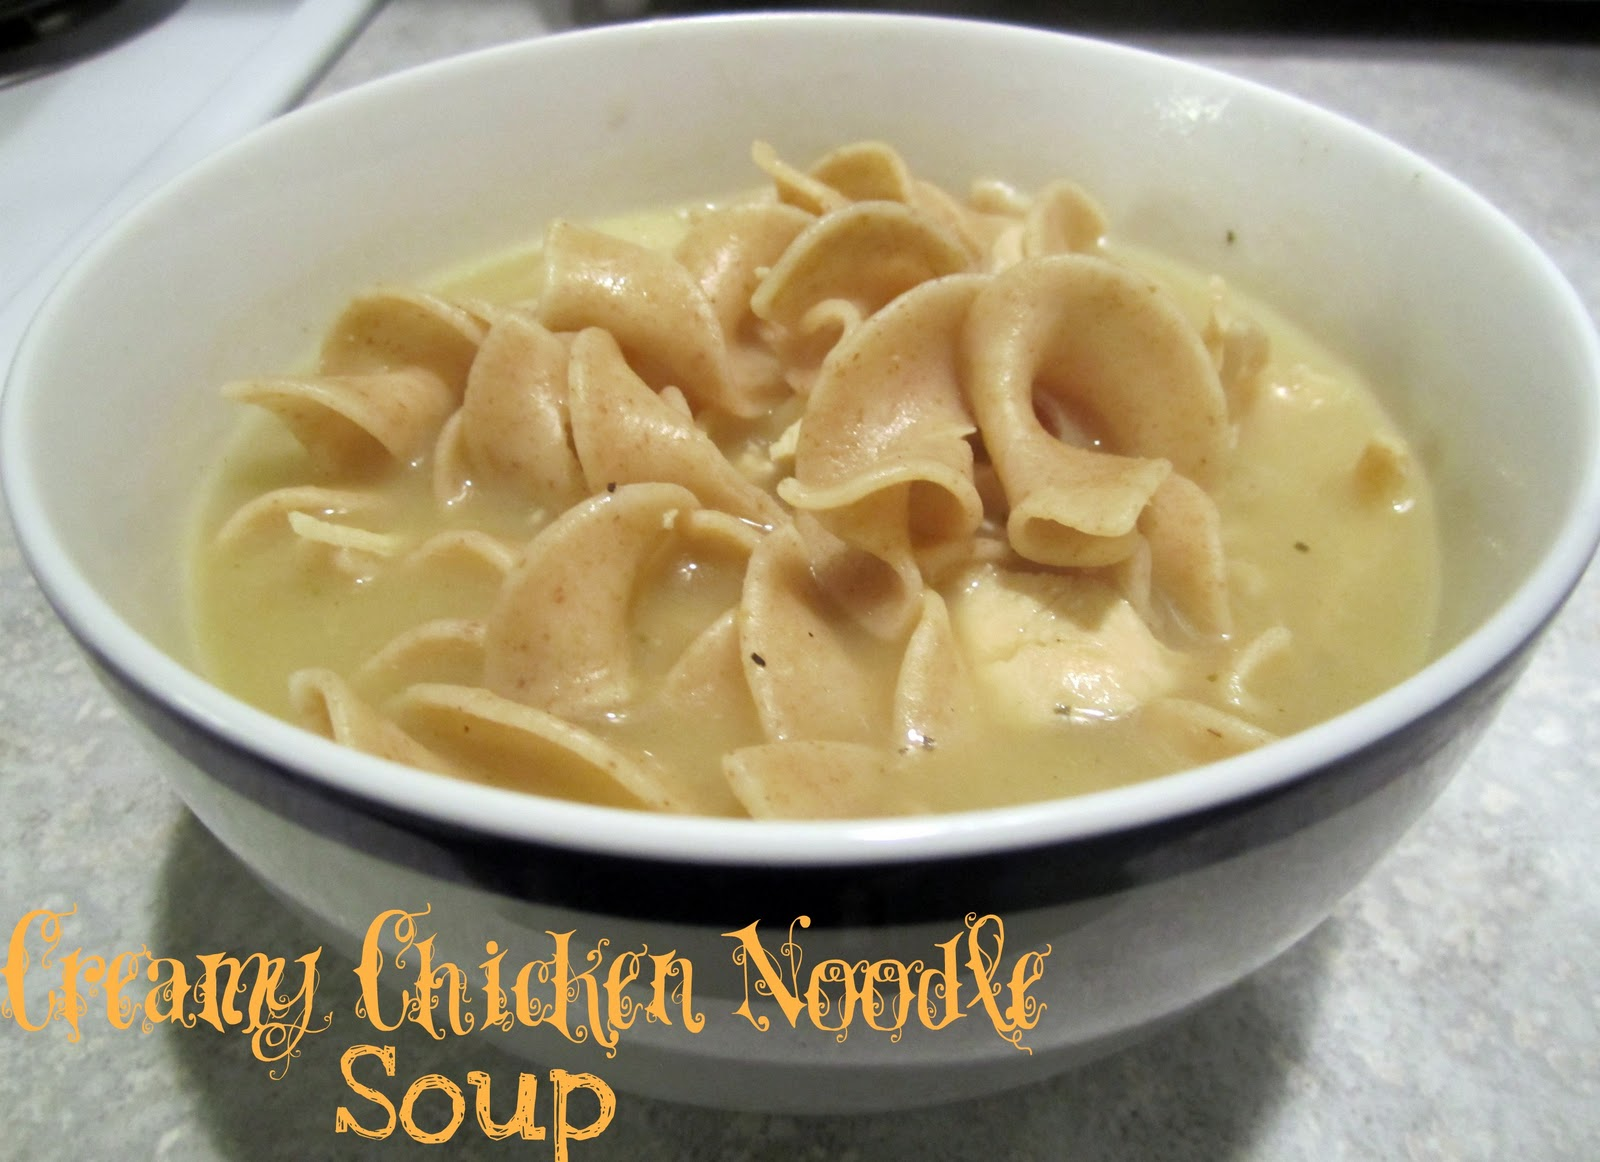 Creamy Chicken Noodle Soup - Whats Cooking Love?